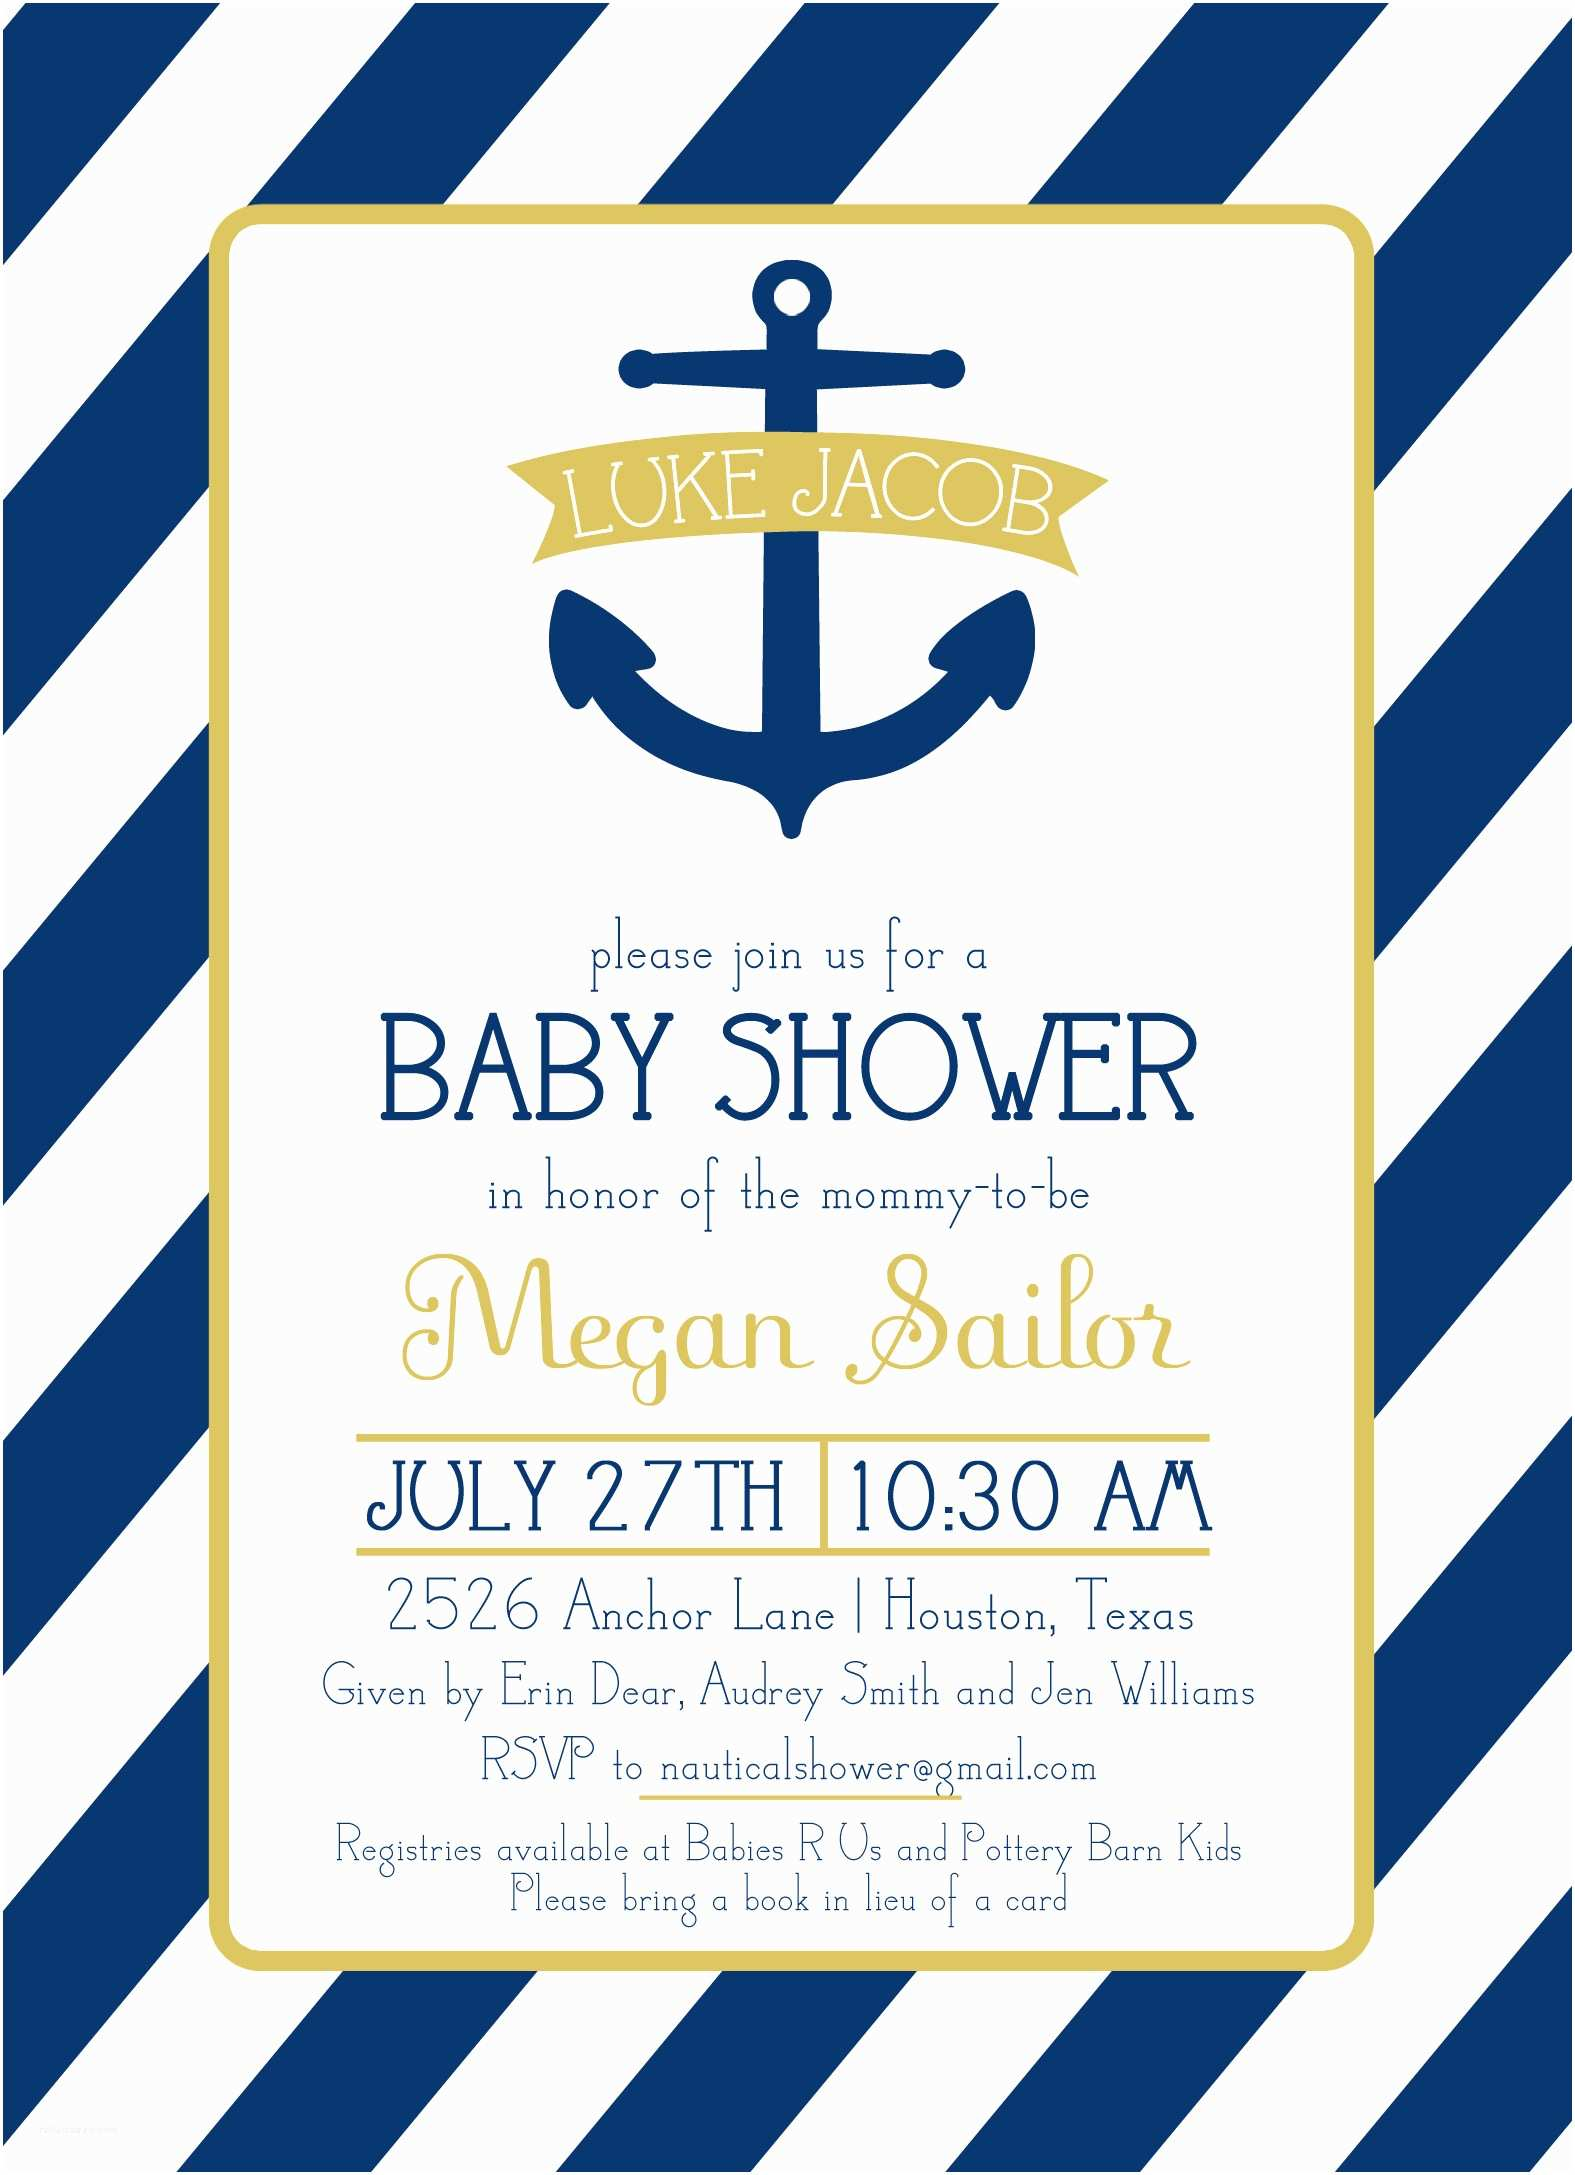 Nautical theme Baby Shower Invitations White Background with Blue Frame Nautical theme Baby